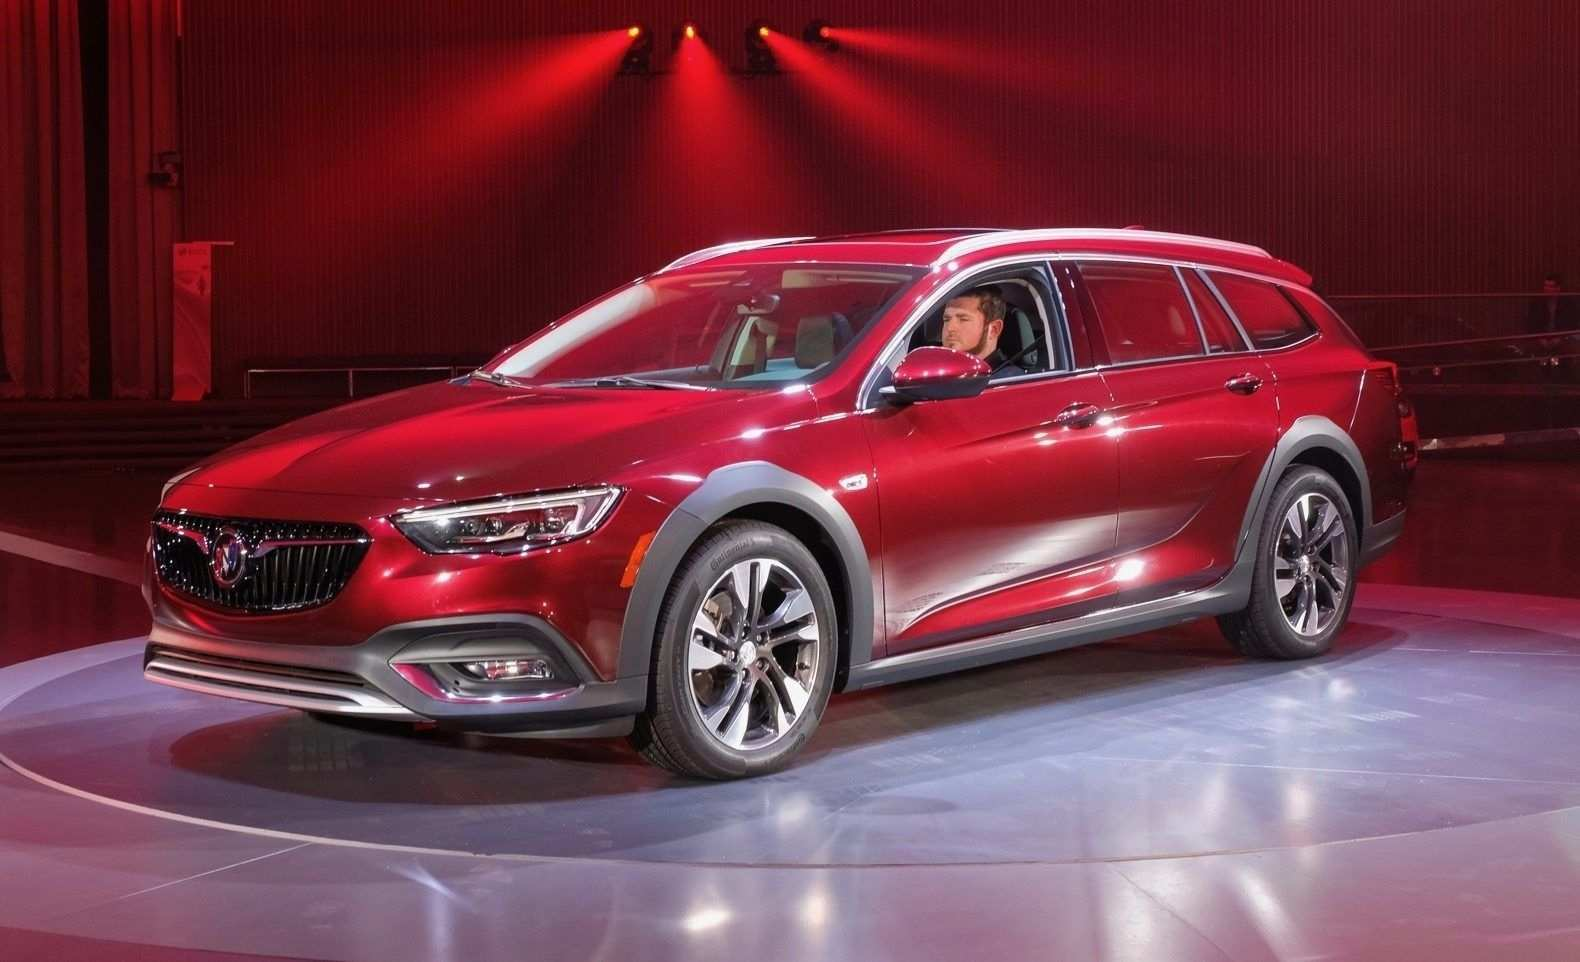 13 Concept of Buick Concept Cars 2019 Picture Release Date And Review Release Date with Buick Concept Cars 2019 Picture Release Date And Review